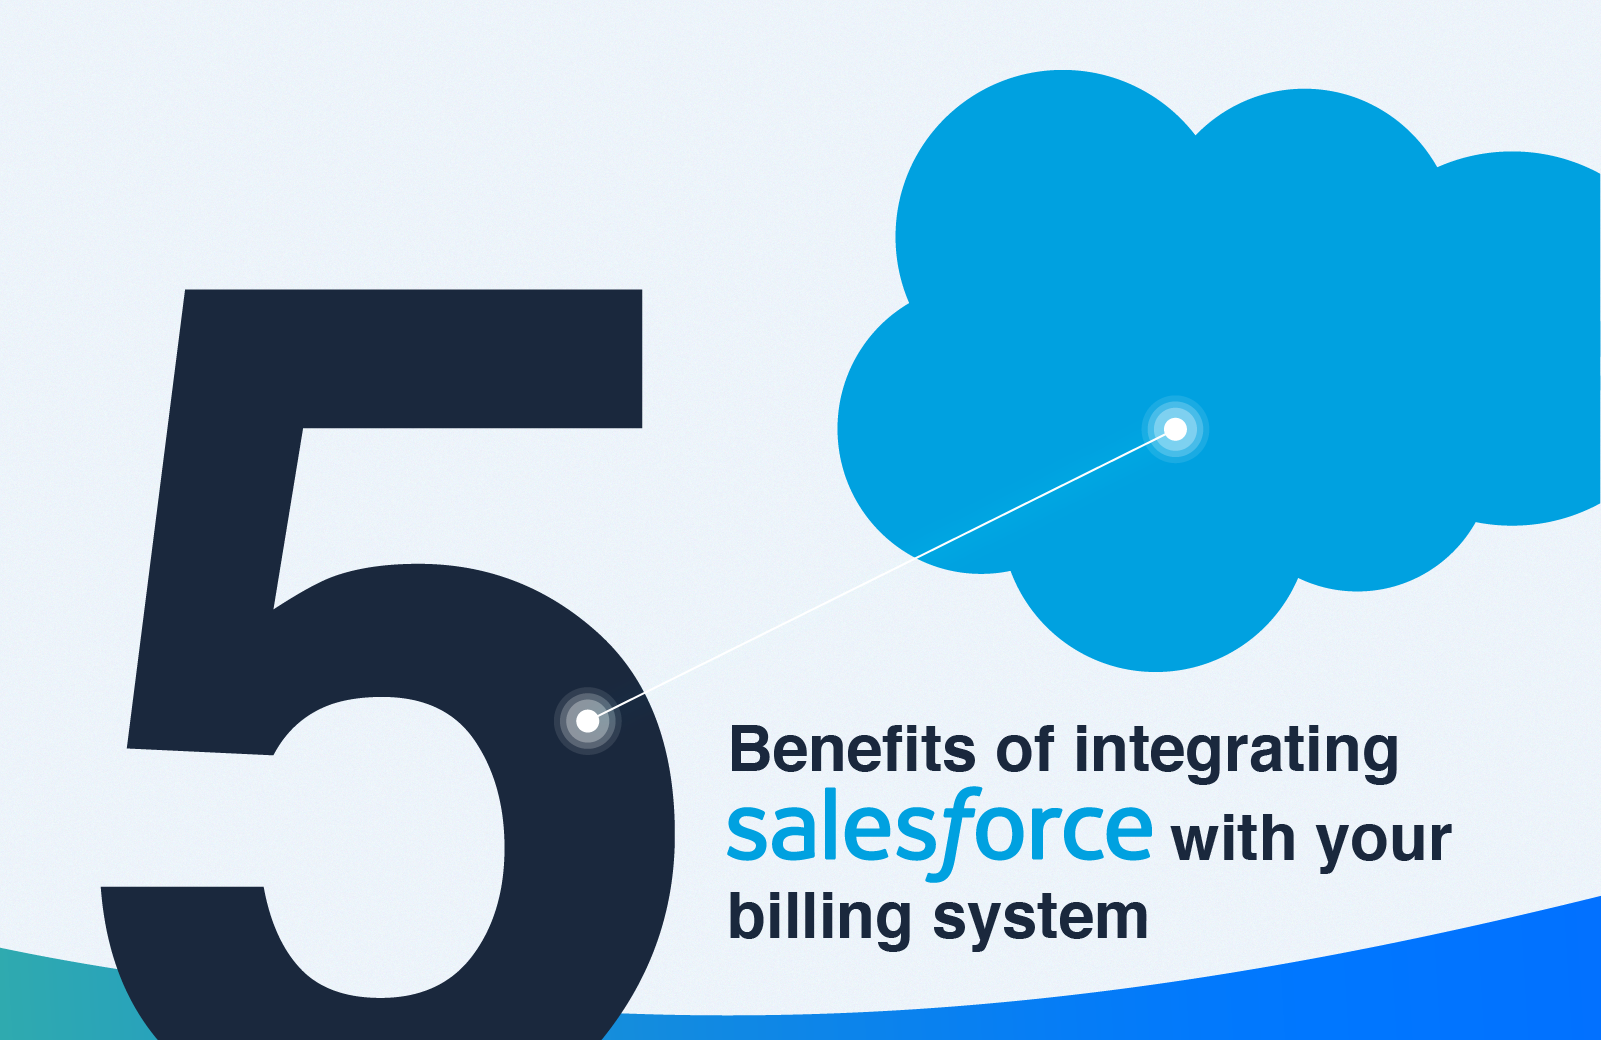 5 Benefits Of Integrating Salesforce With Your Billing System